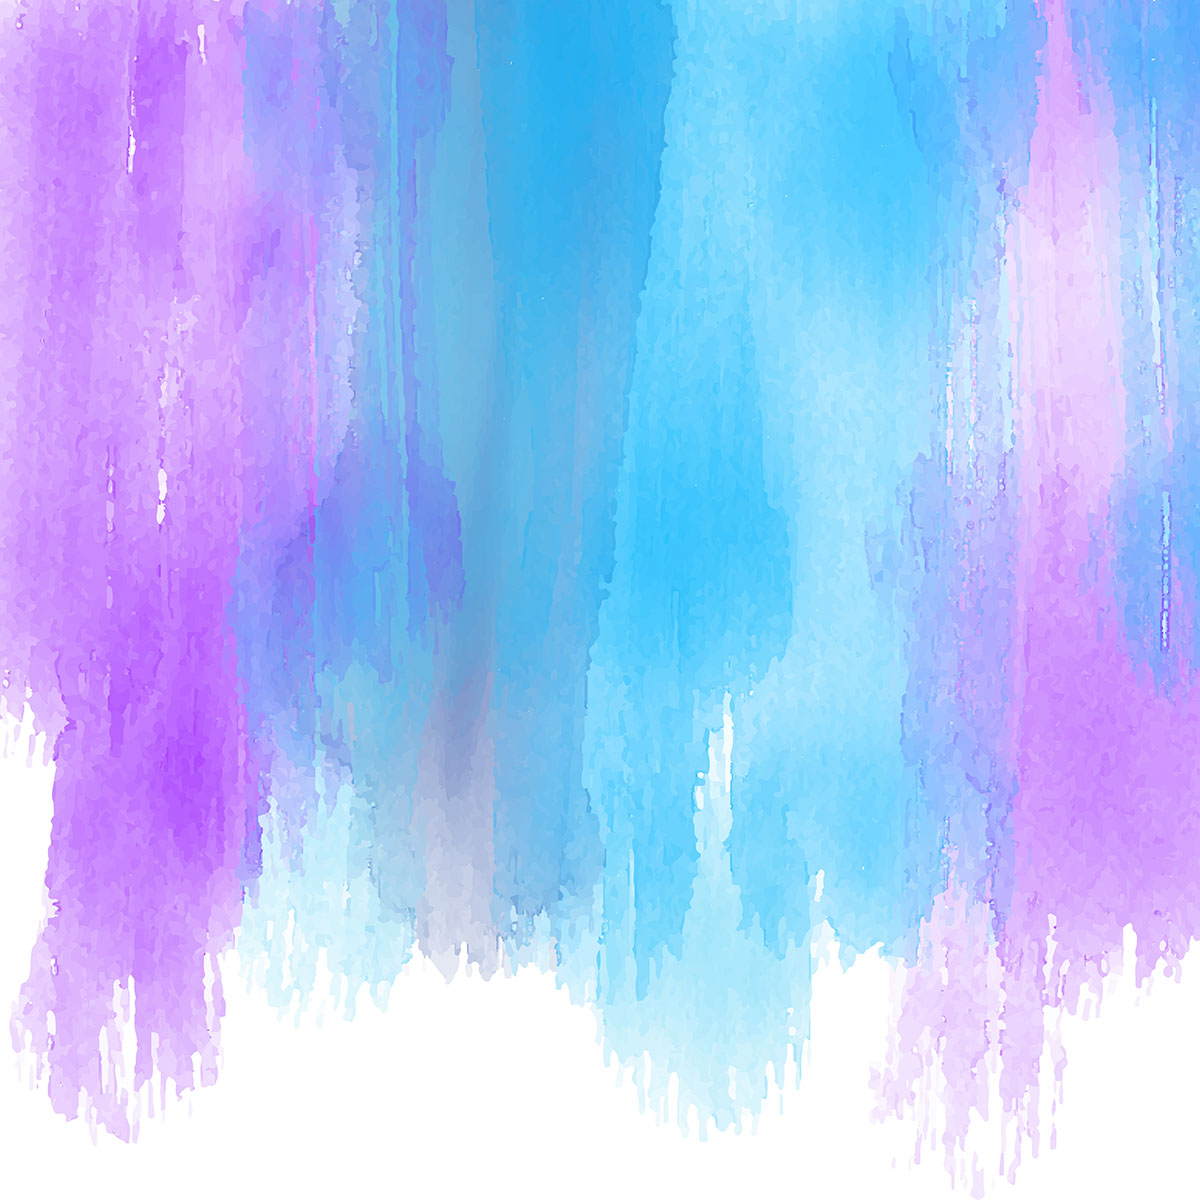 Watercolour paint strokes background - Download Free ...